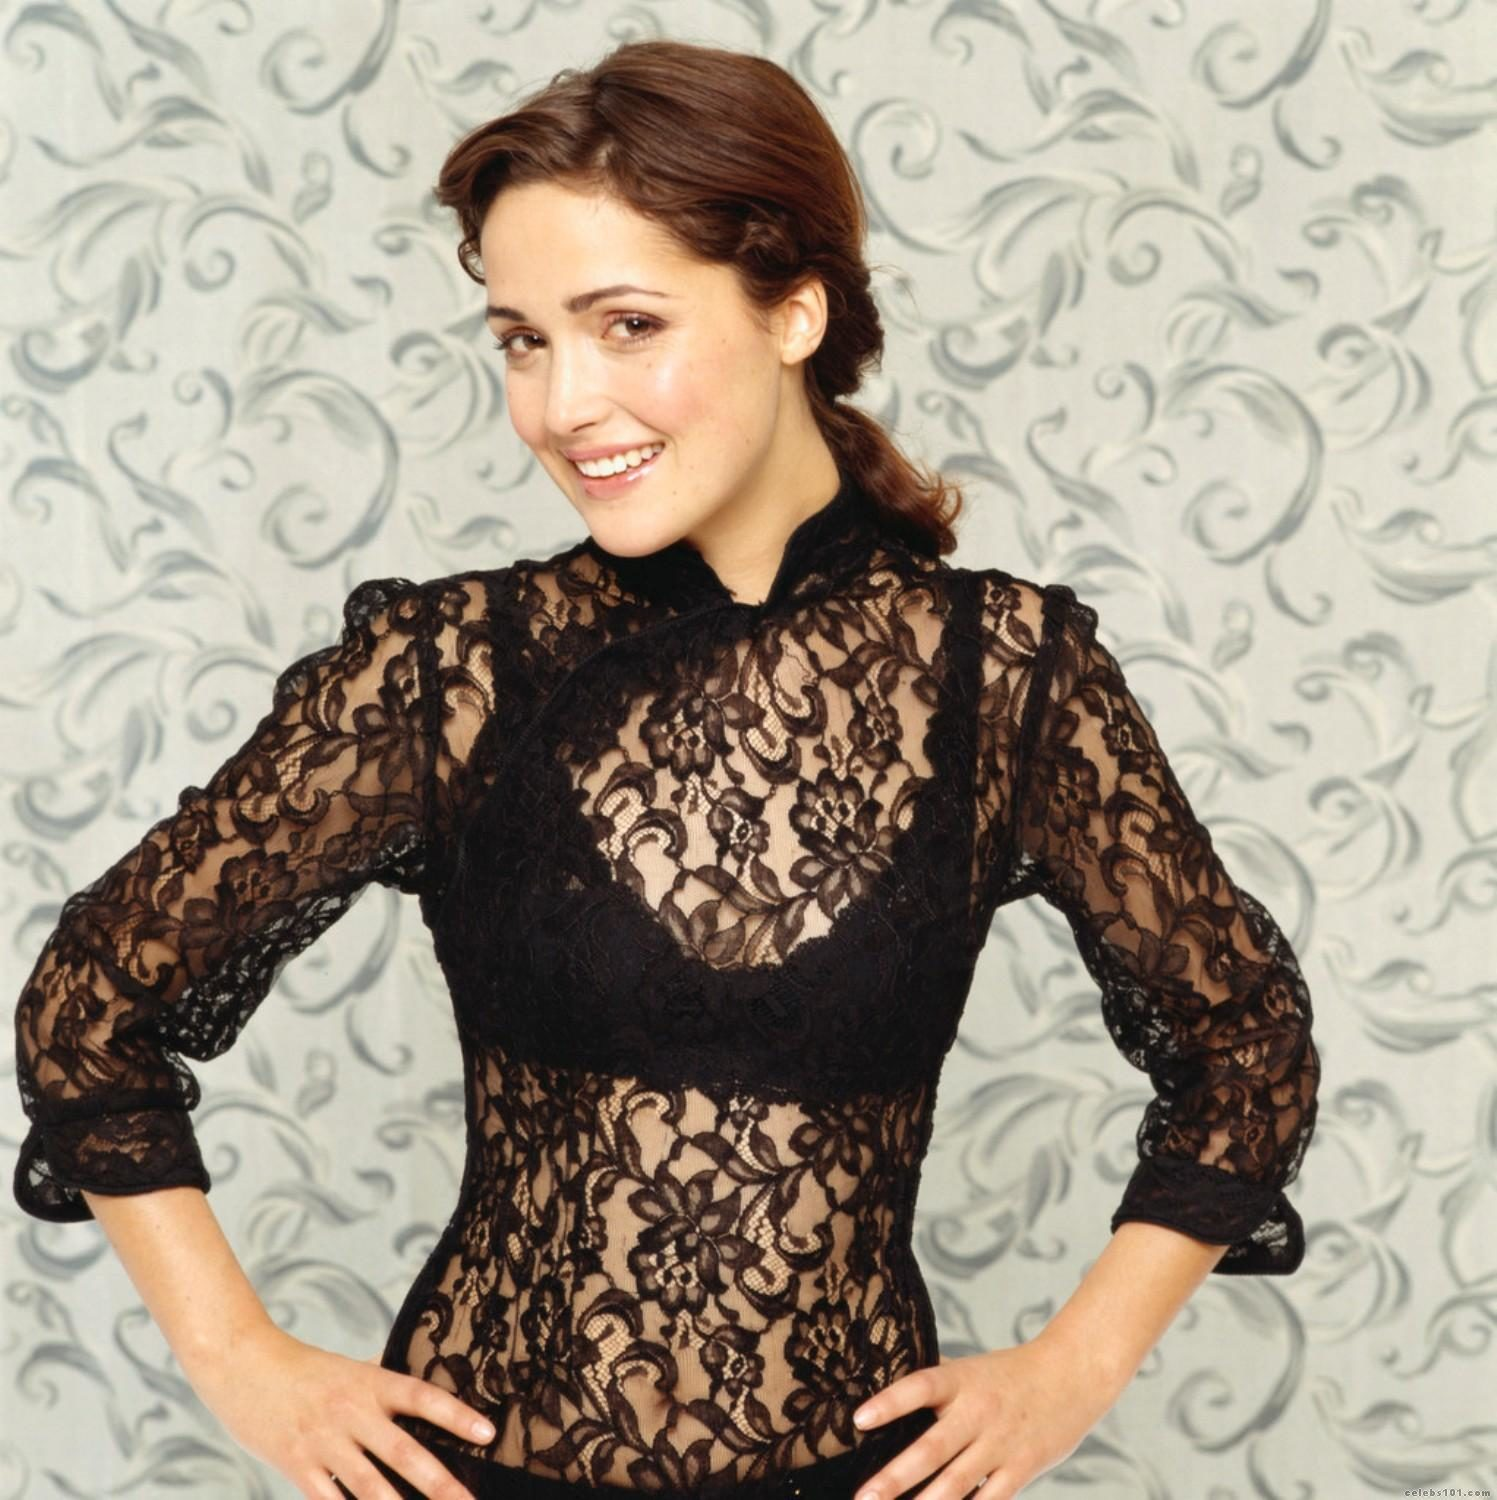 rose-byrne-height-weight-age-bra-size-body-stats-affairs-boy-friends-details-3